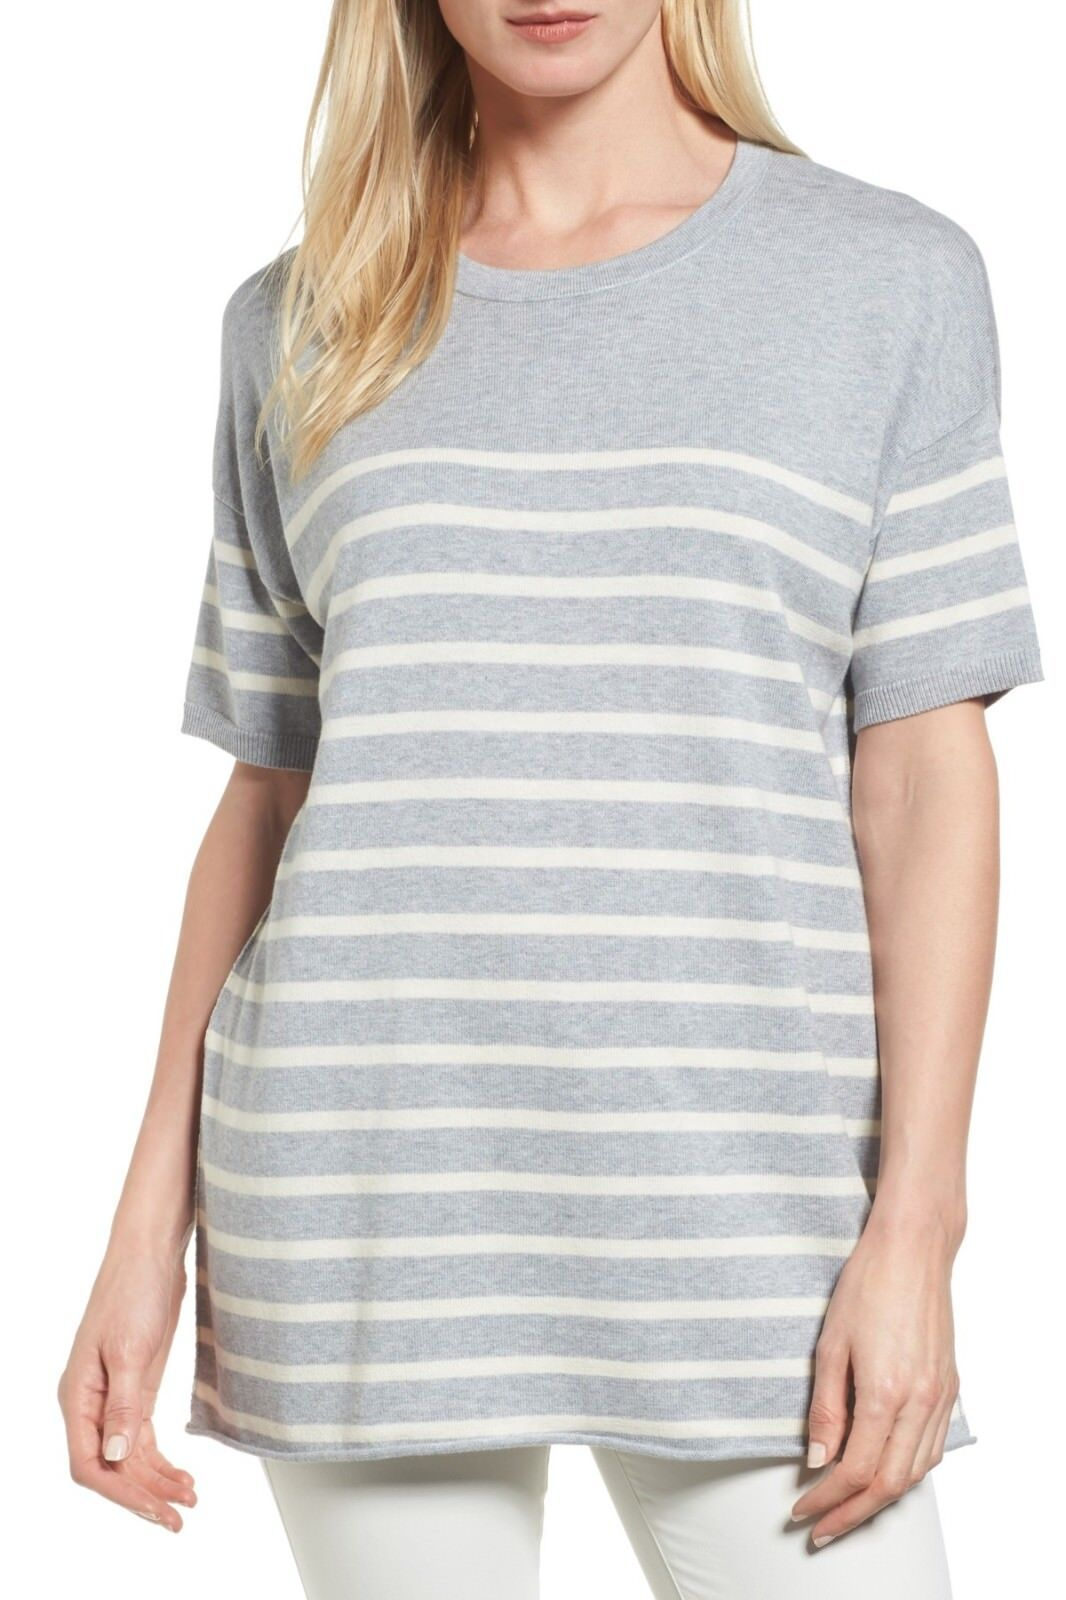 Eileen Fisher Dark Pearl And White Stripe Organic Cotton Sweater Size X-Large